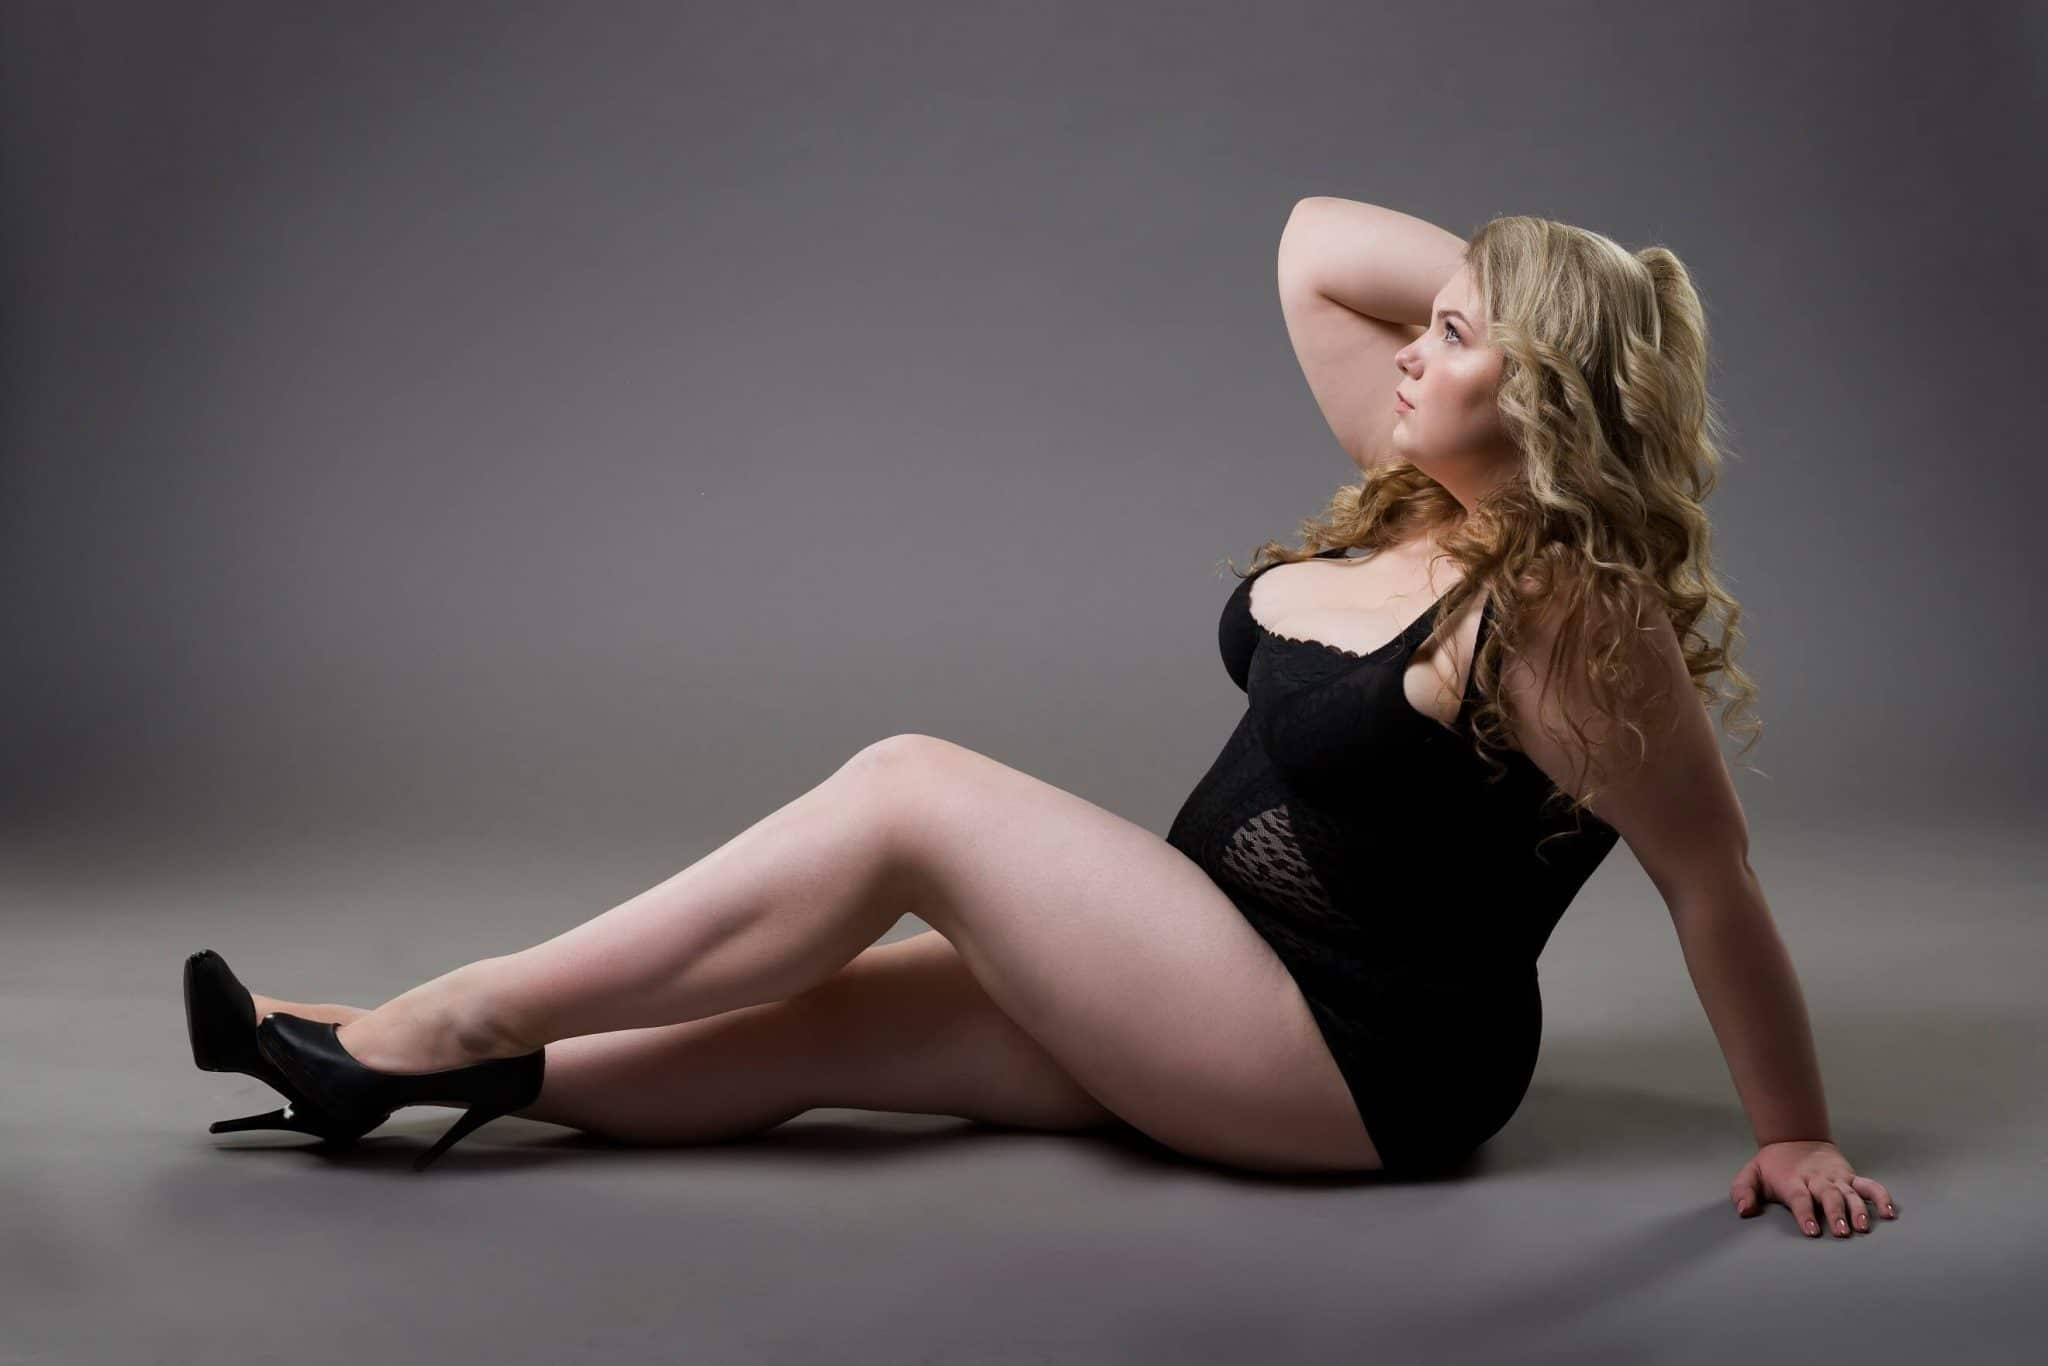 model in a plus size girdle